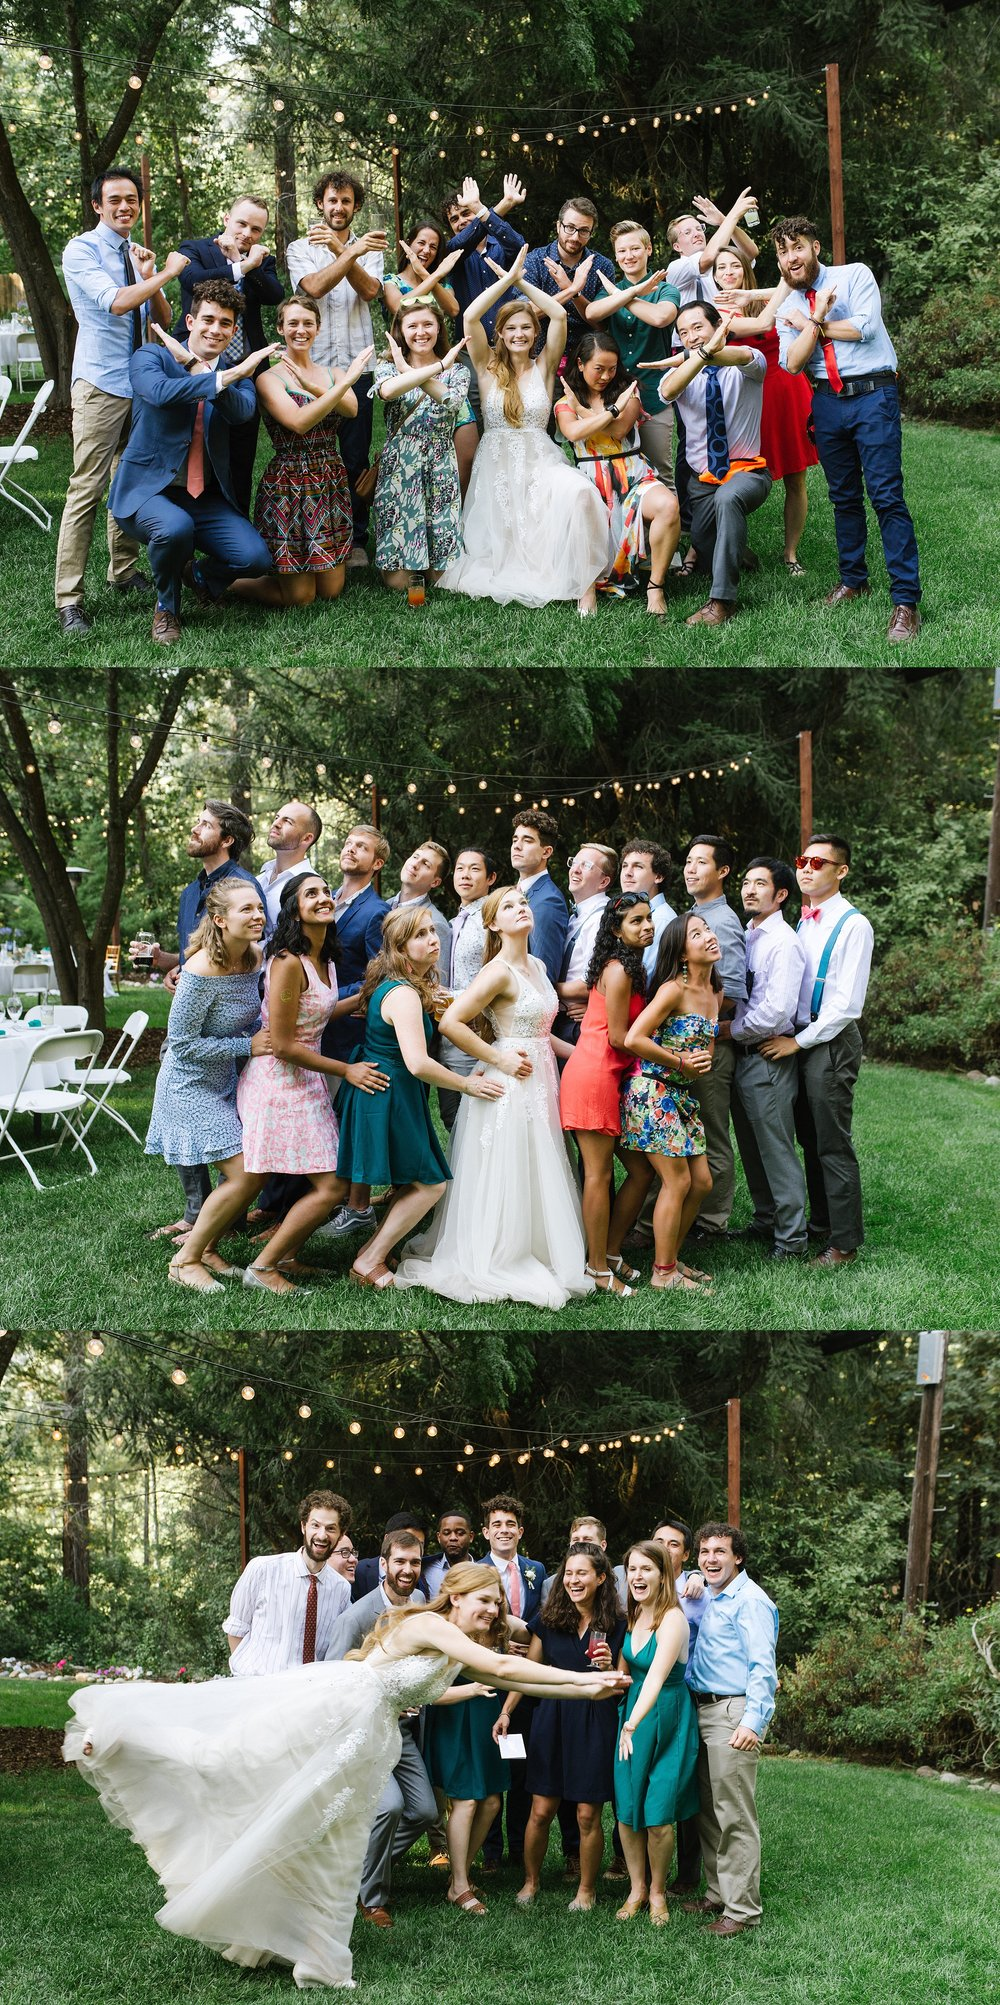 Amphitheatre-of-the-Redwoods-wedding-erikariley_chelsea-dier-photography_0032.jpg